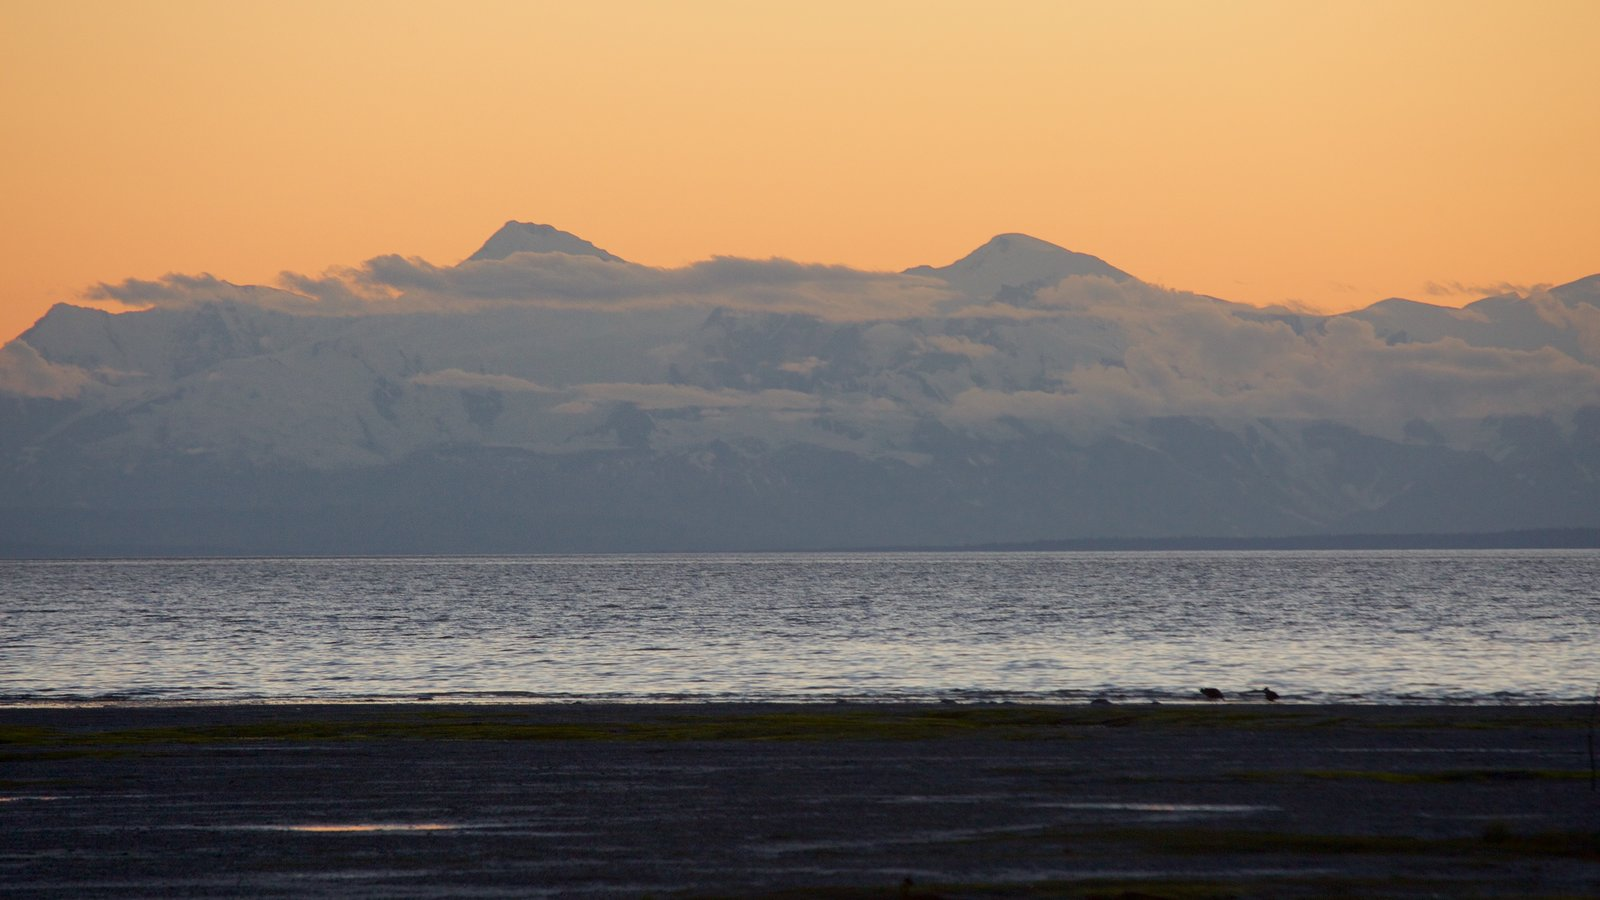 Anchorage showing a sunset, general coastal views and mountains